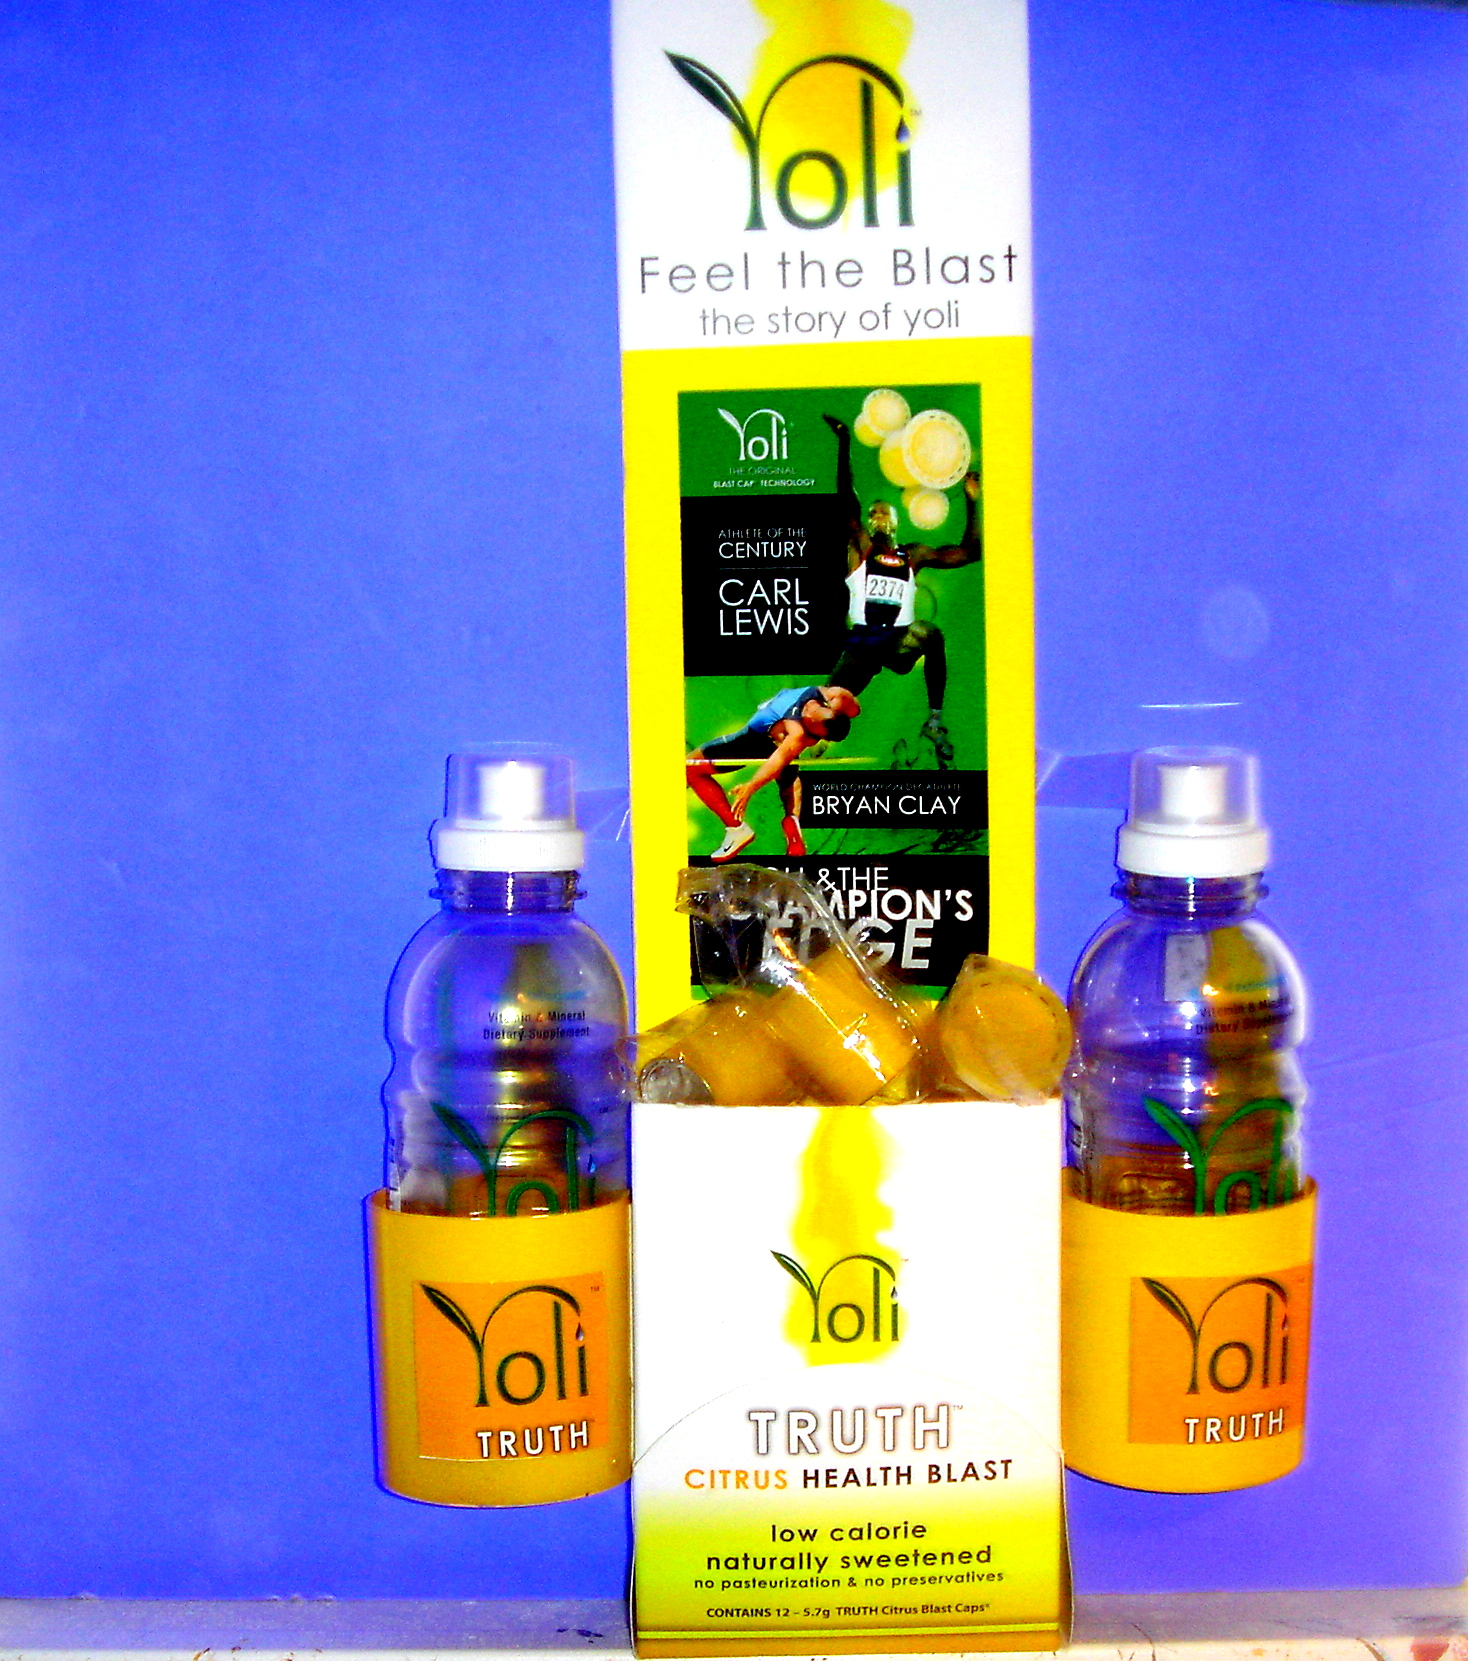 OFFERED: $120.00 IN FREE YOLI PRODUCT AND A FREE YOLI DISPLAY